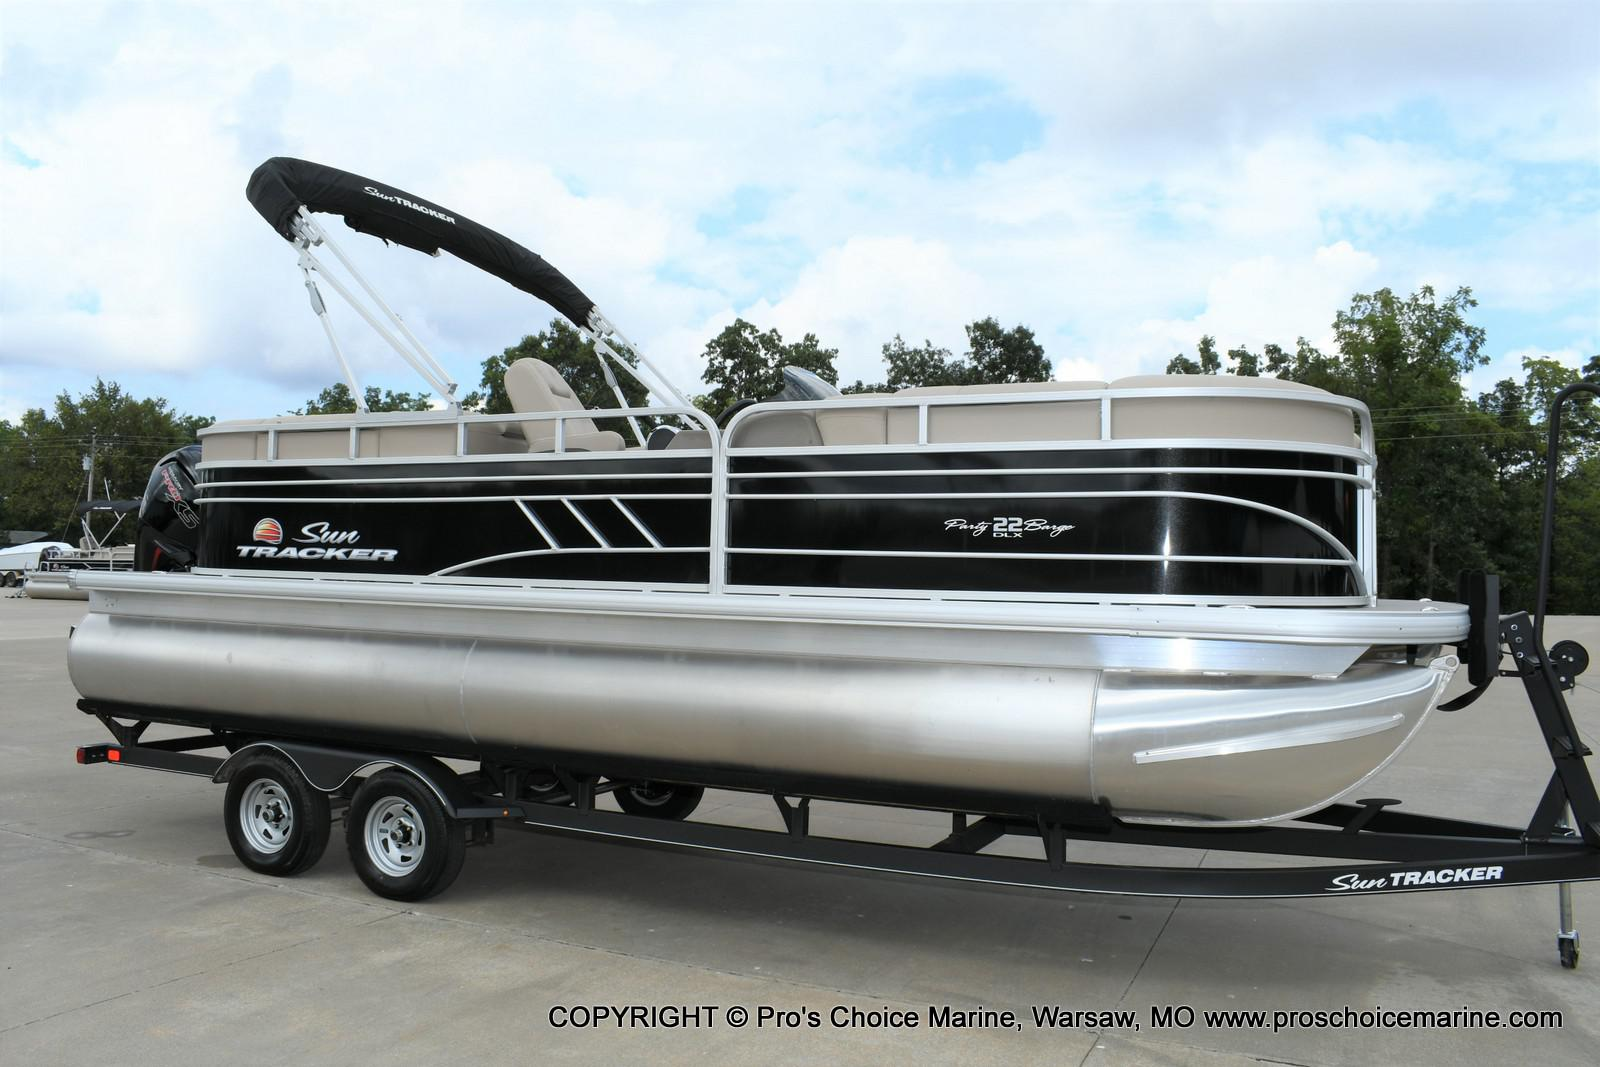 2020 Sun Tracker boat for sale, model of the boat is Party Barge 22 DLX & Image # 2 of 50